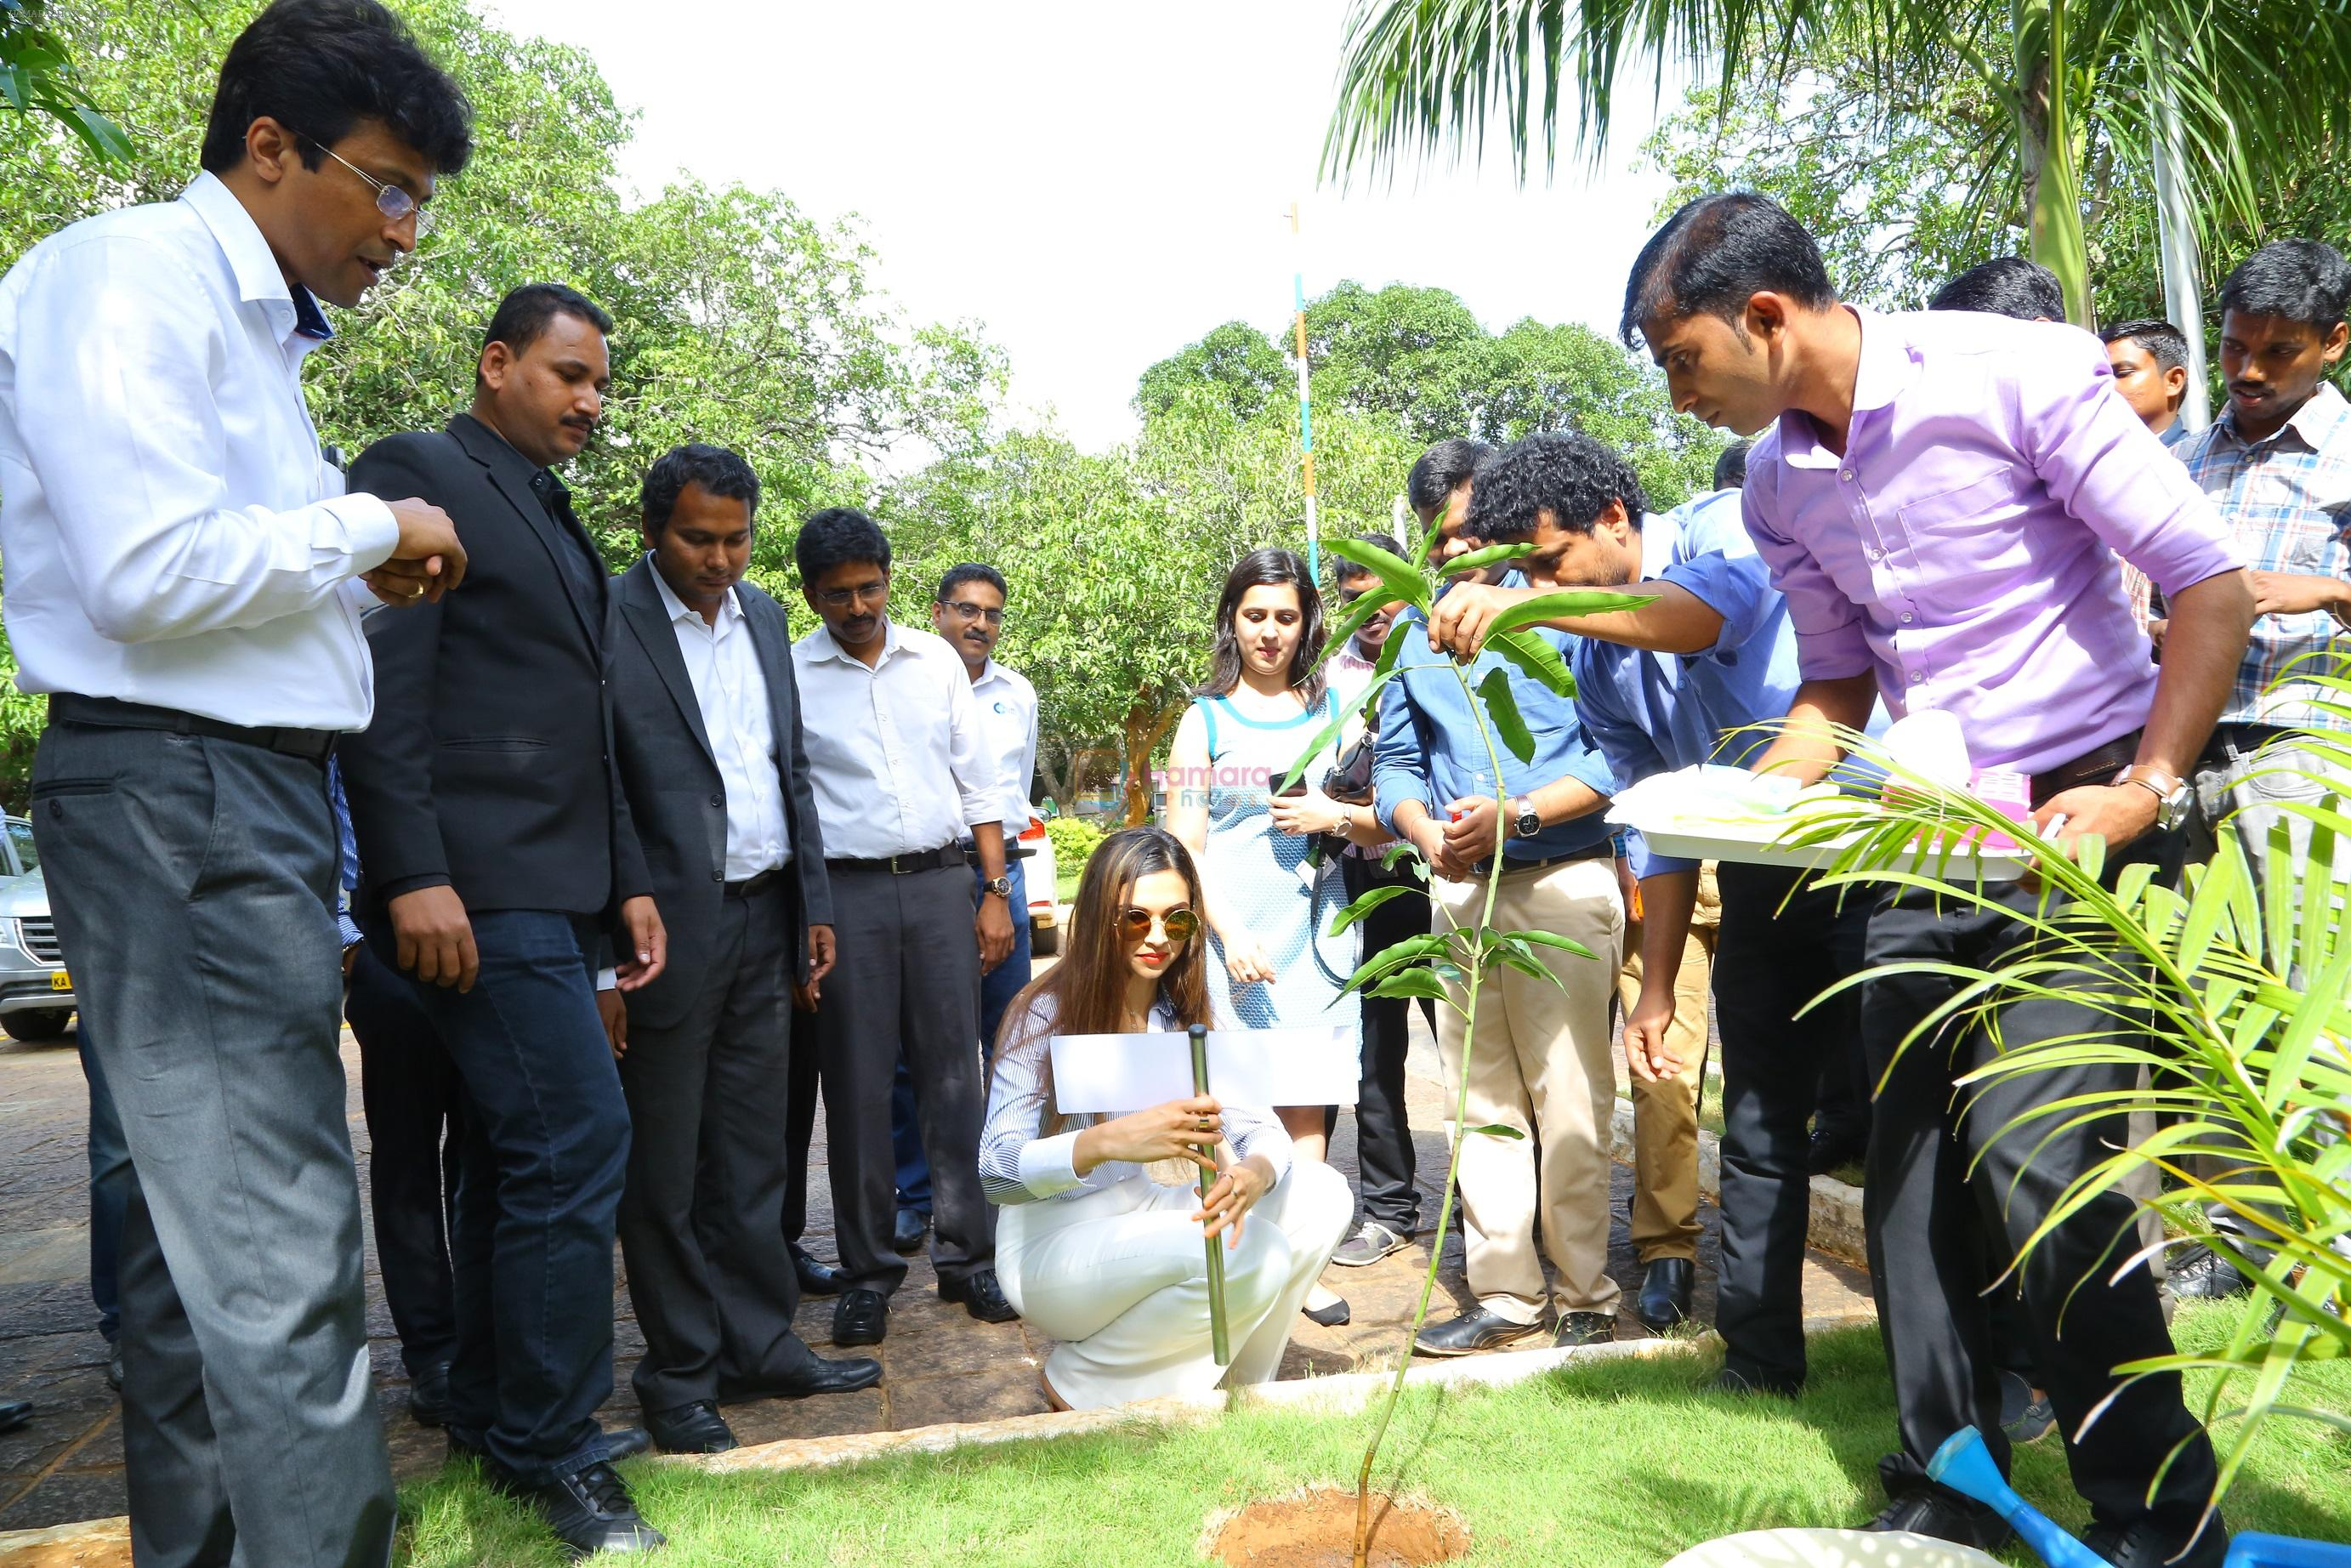 Deepika Padukone, brand ambassador of India�s no.1 sugar free chewing gum Orbit plants a mango tree sapling at the Wrigley India factory, the �Home of Orbit� in Bangalore on August 5, 2016